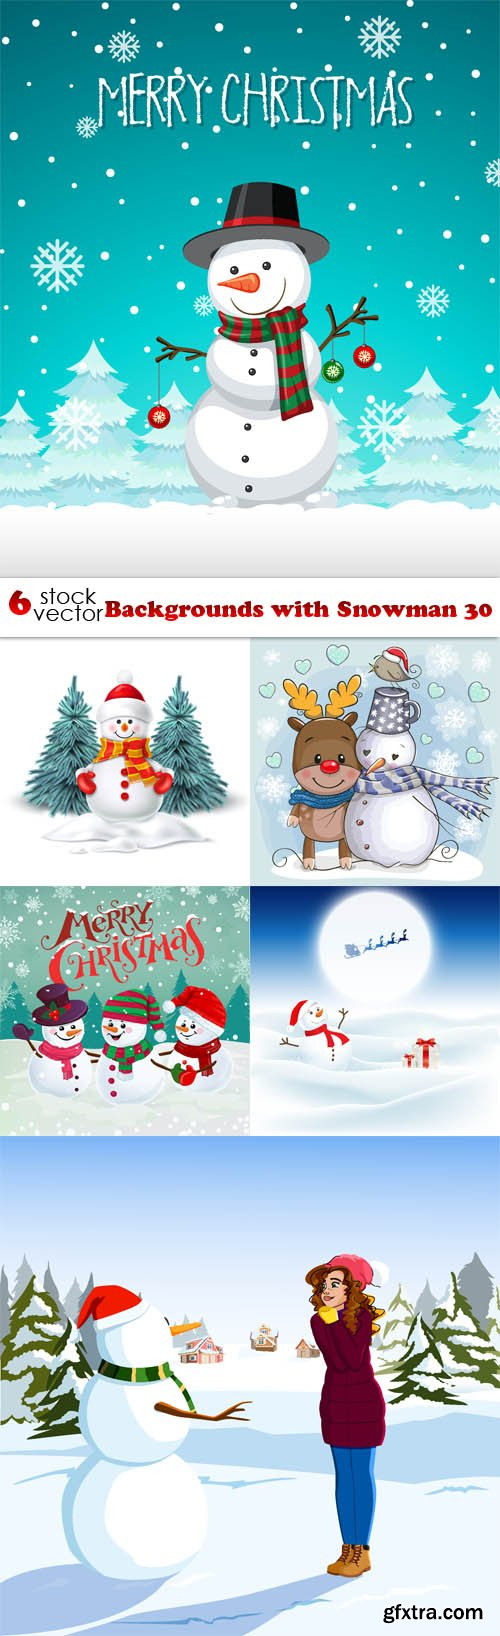 Vectors - Backgrounds with Snowman 30